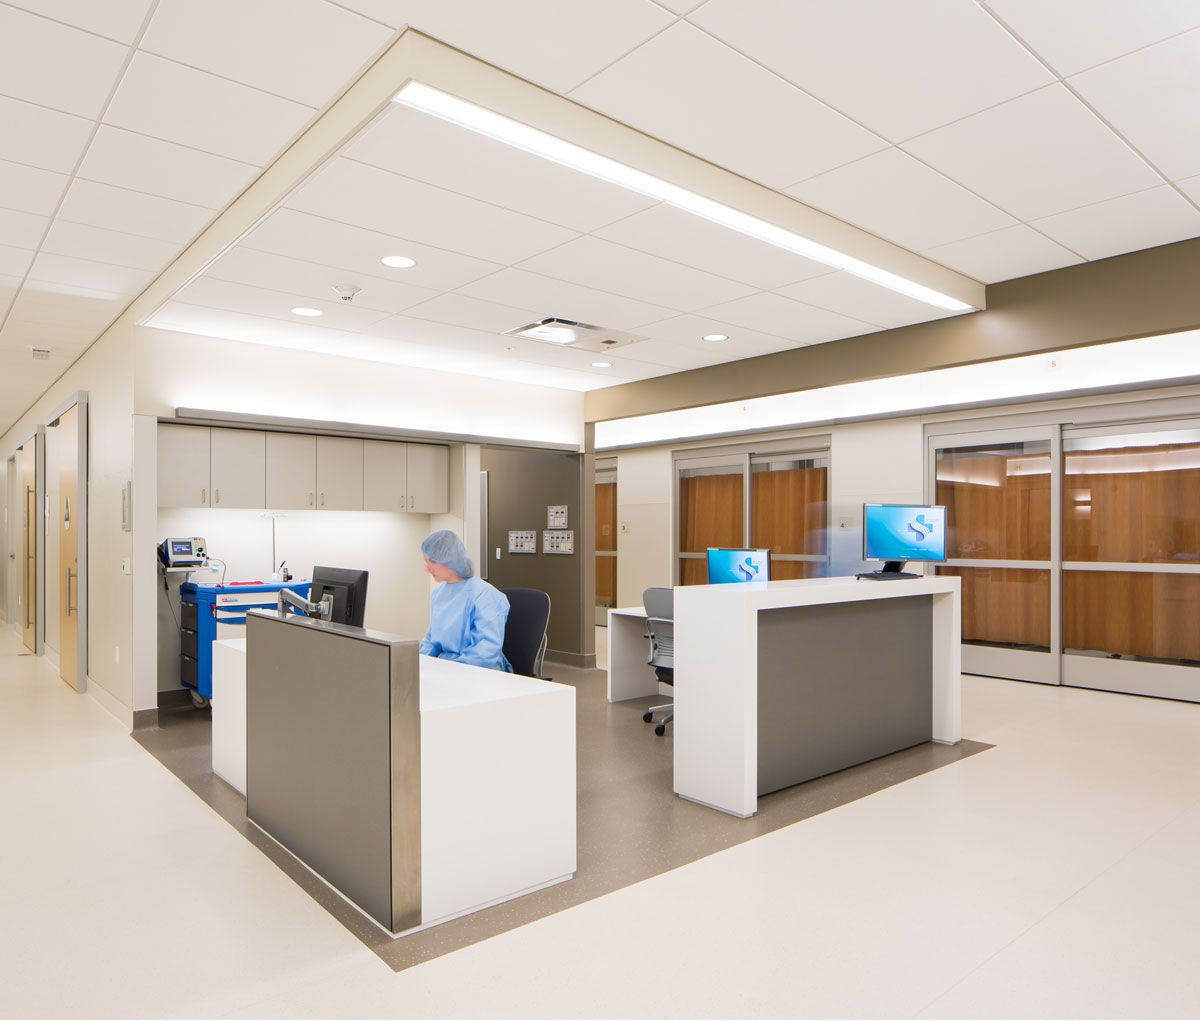 NBBJ Had Multiple Meetings With Medical Staff To Review Standards Accessibility And Ergonomics